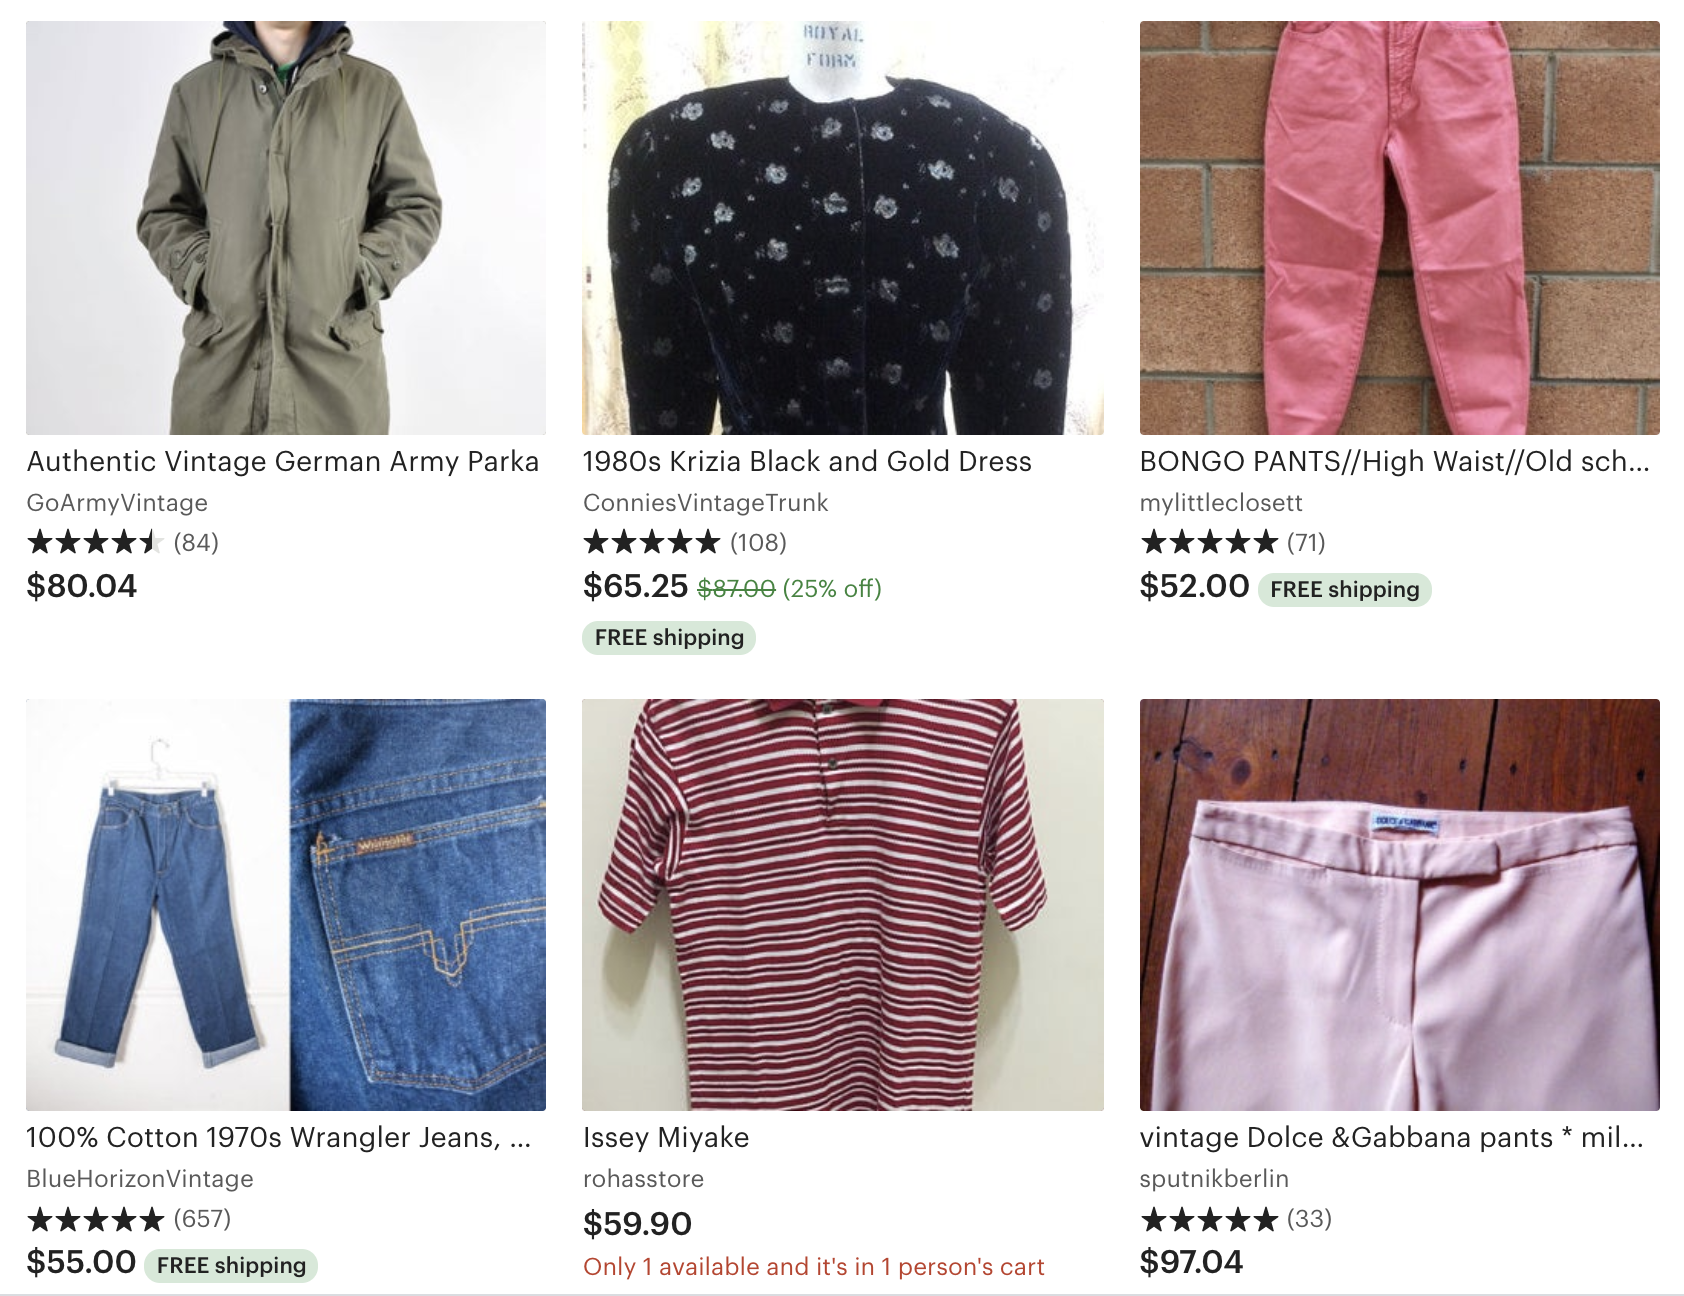 examples of vintage clothing on Etsy